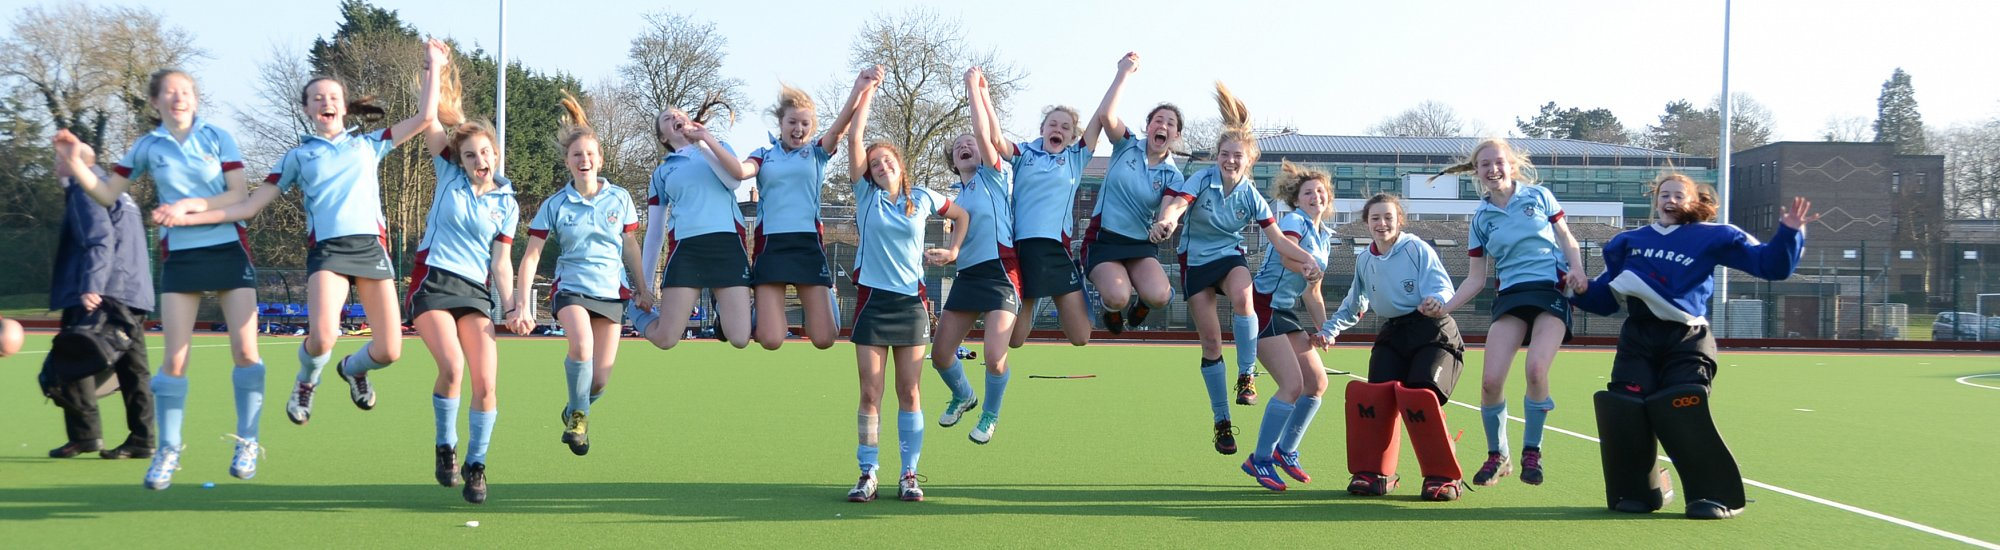 2A Hockey win McDowell Cup 2014